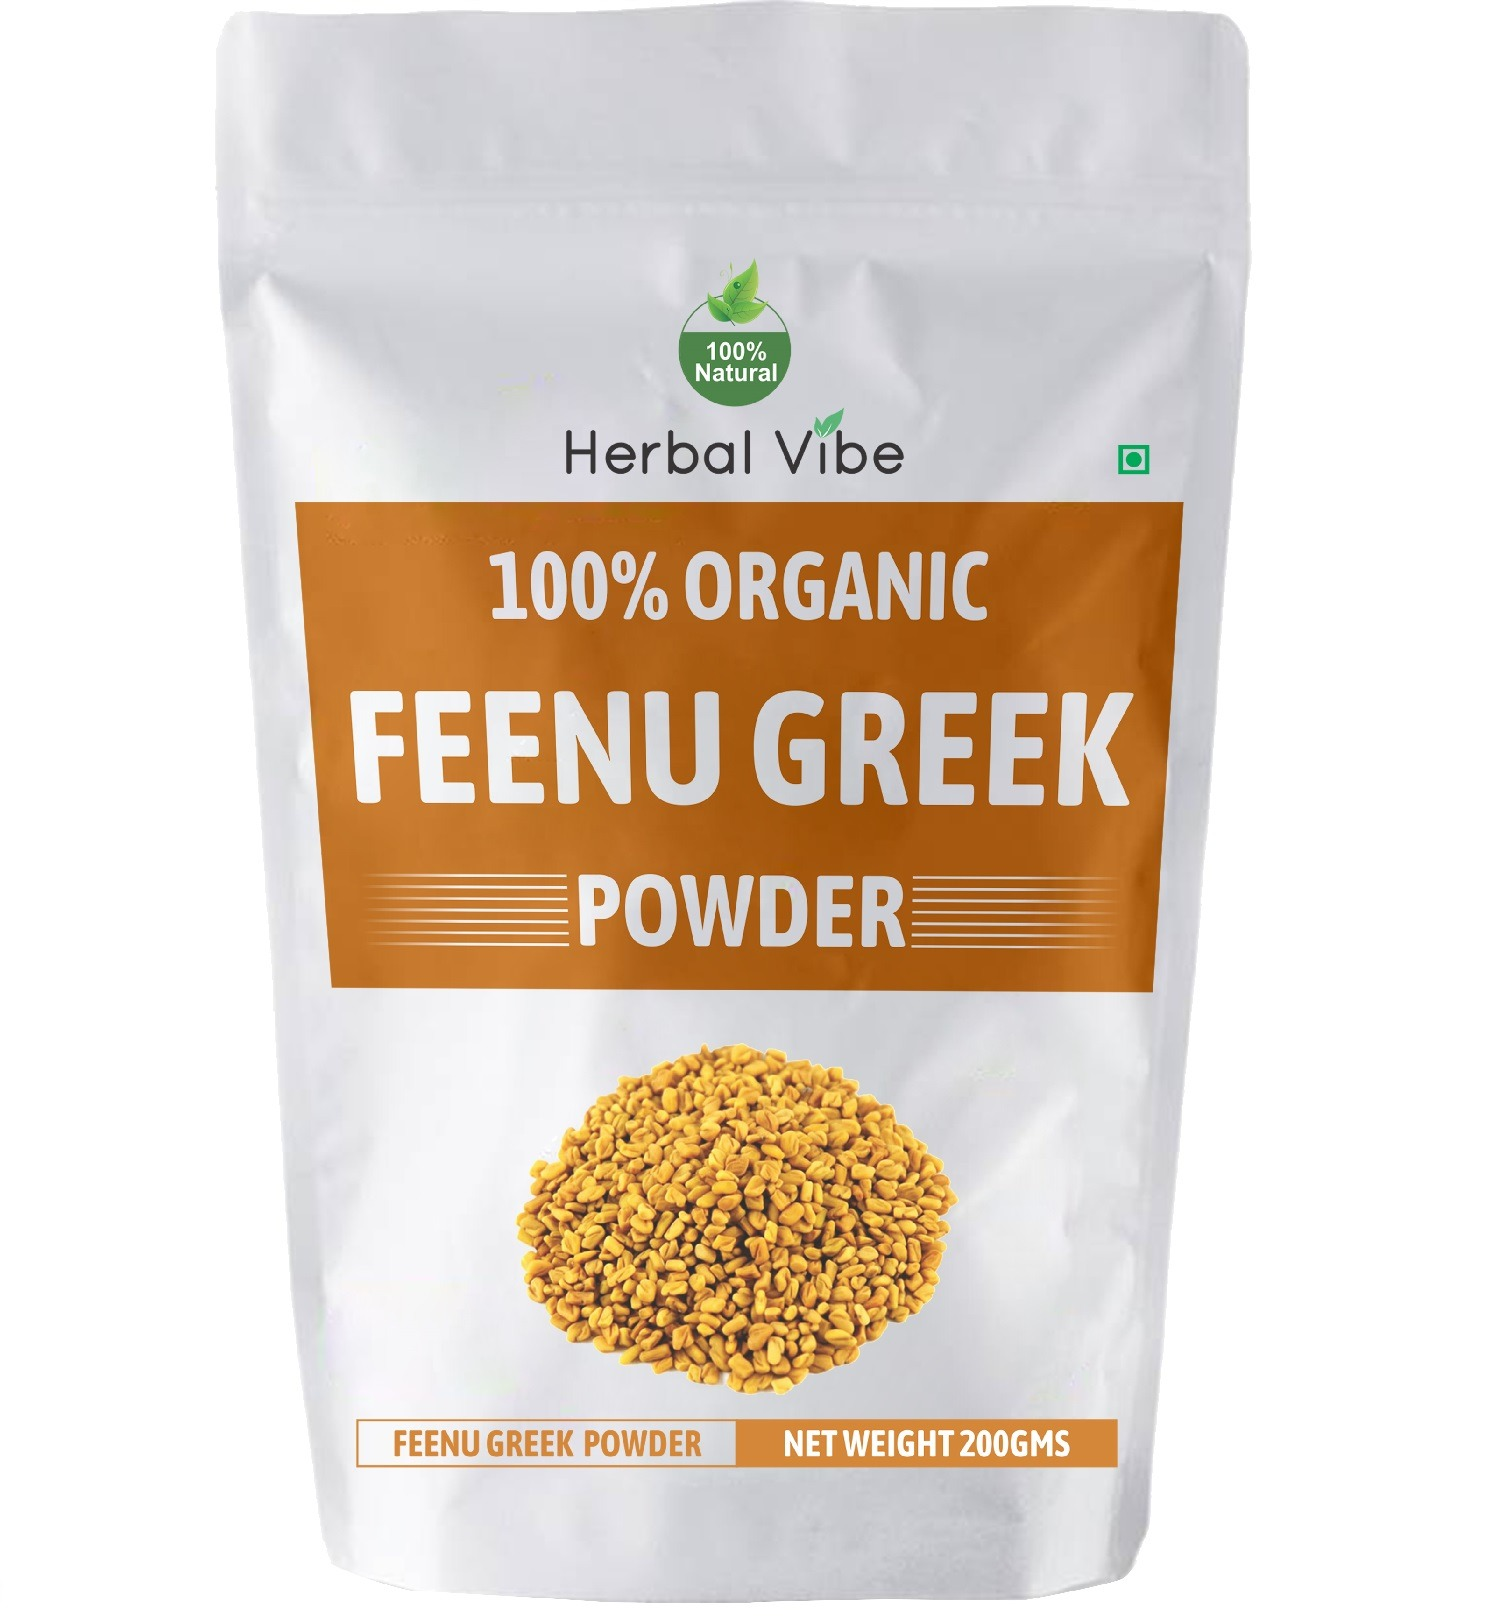 Herbal Vibe Fenugreek Powder for Face & Hair